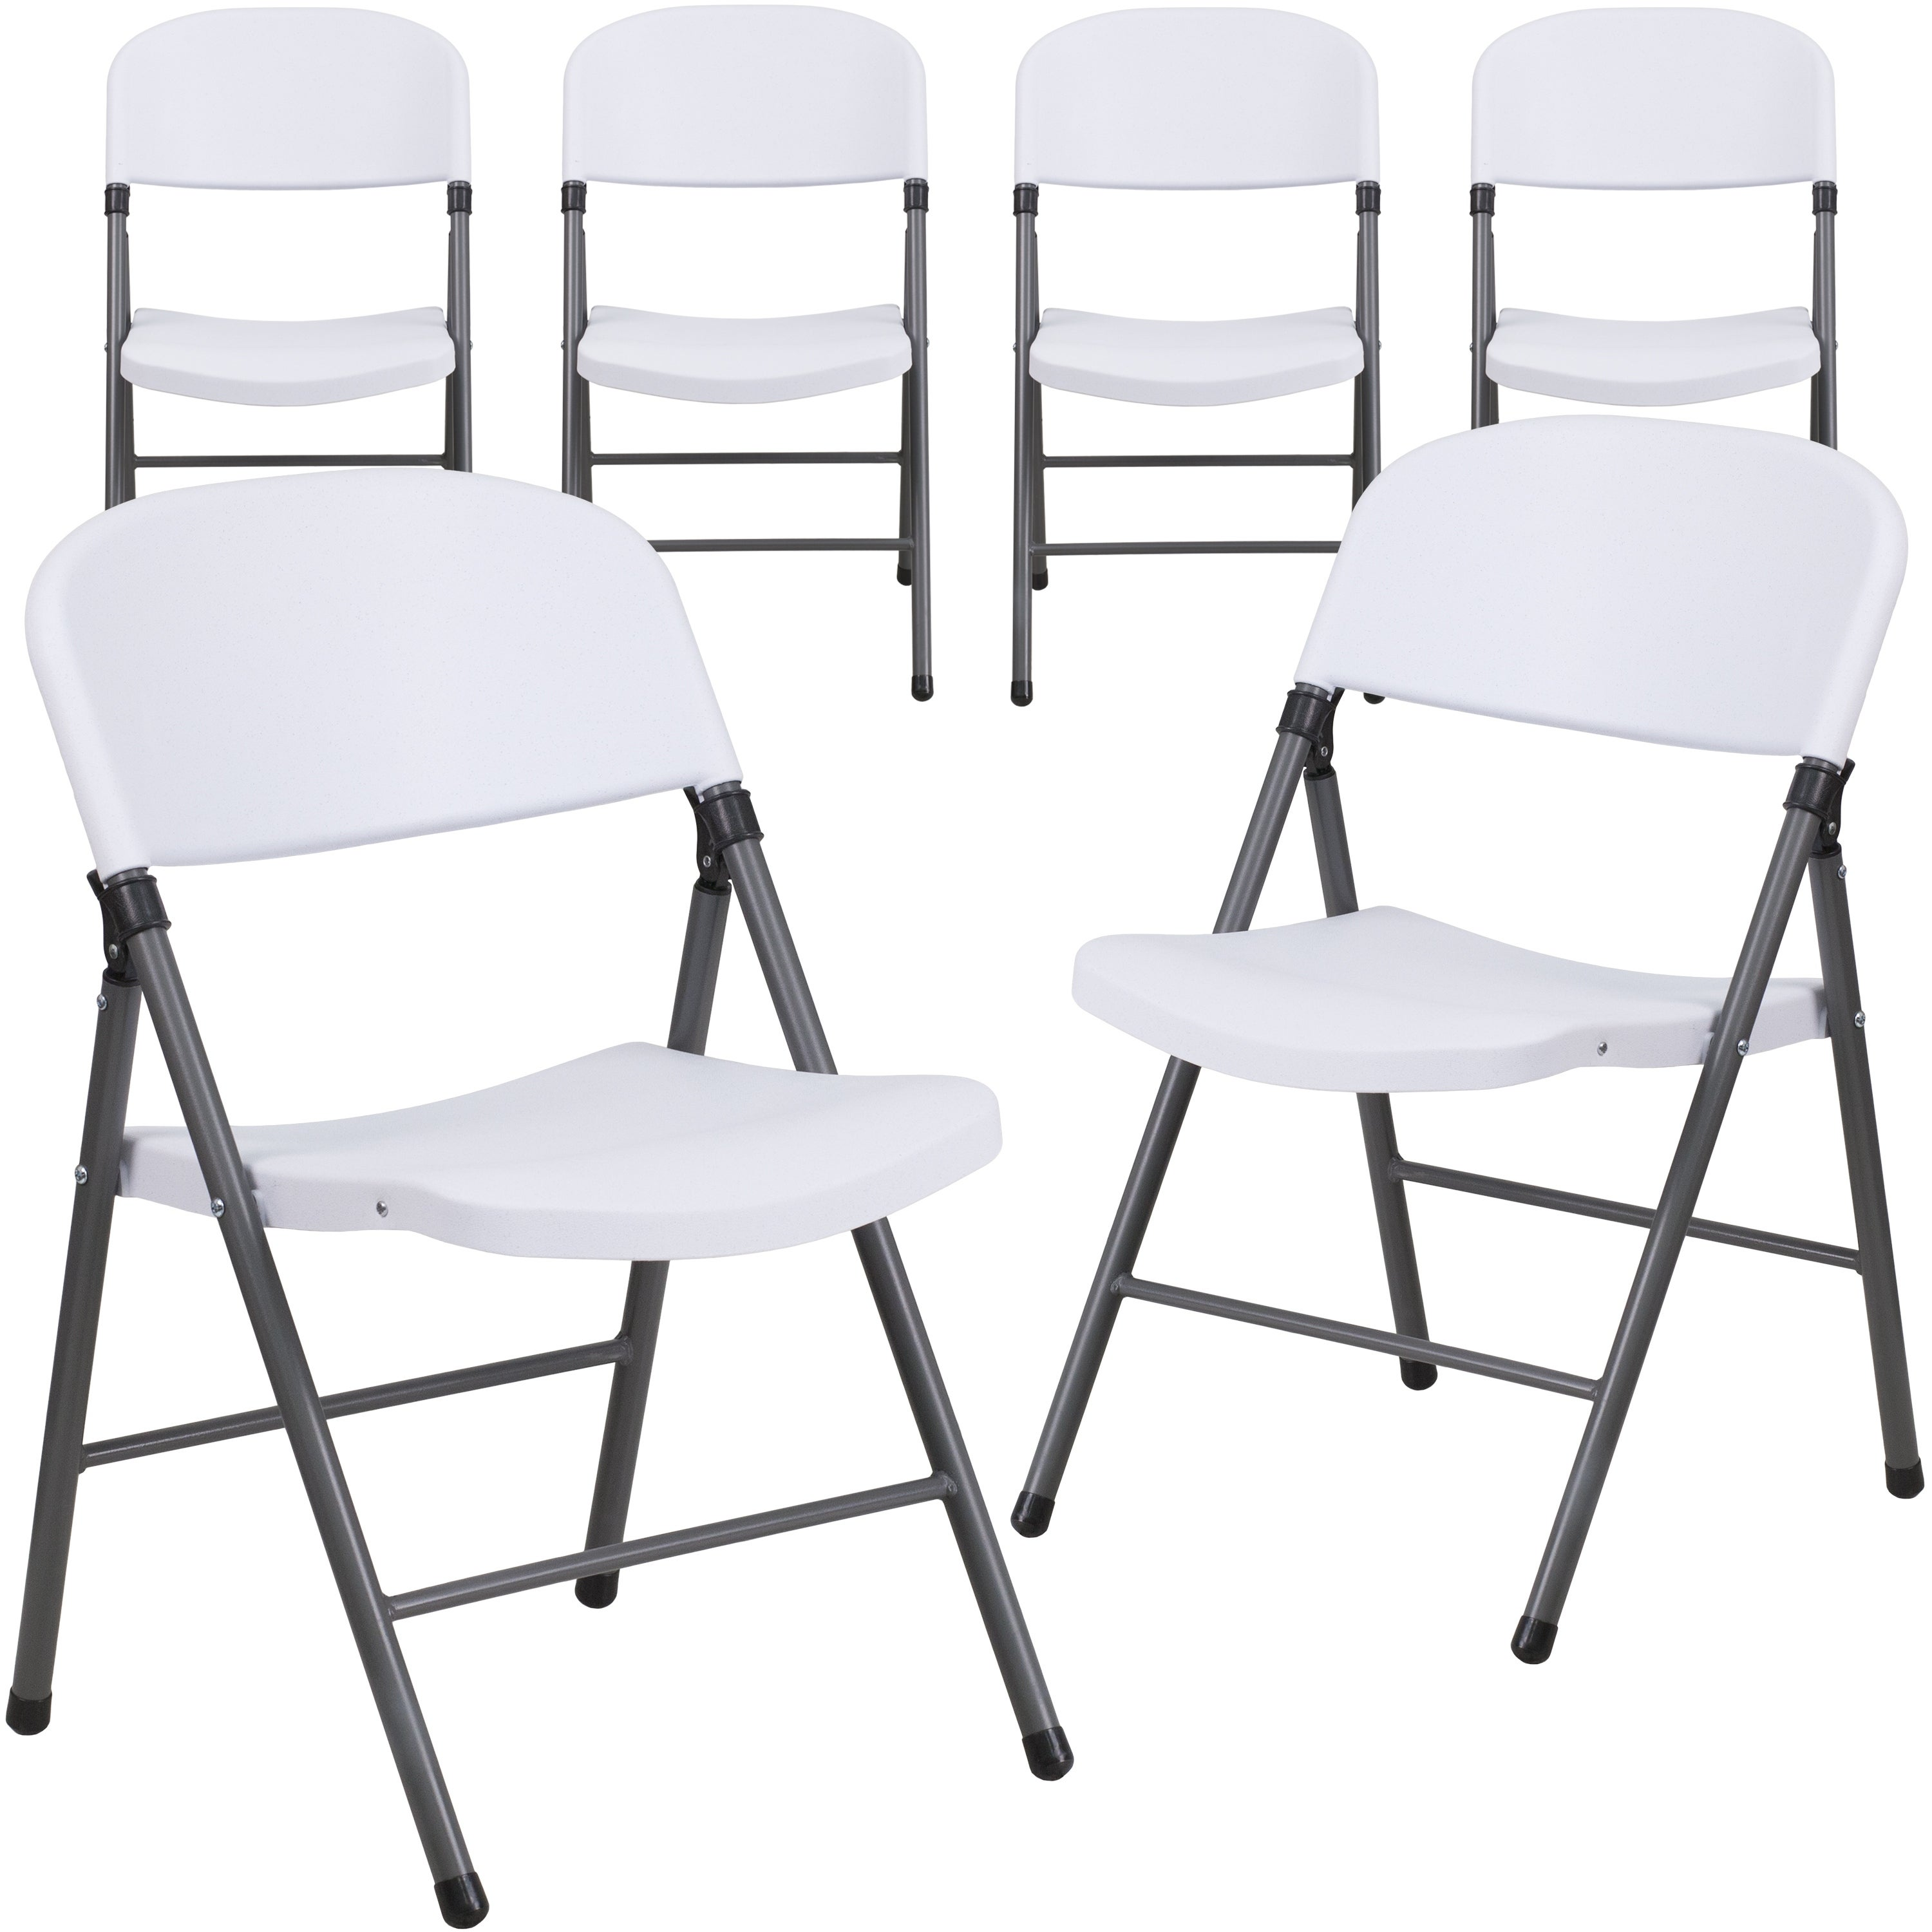 Plastic Folding Chair With Charcoal Frame Set Of 6 On Sale Overstock 27066799 Granite White